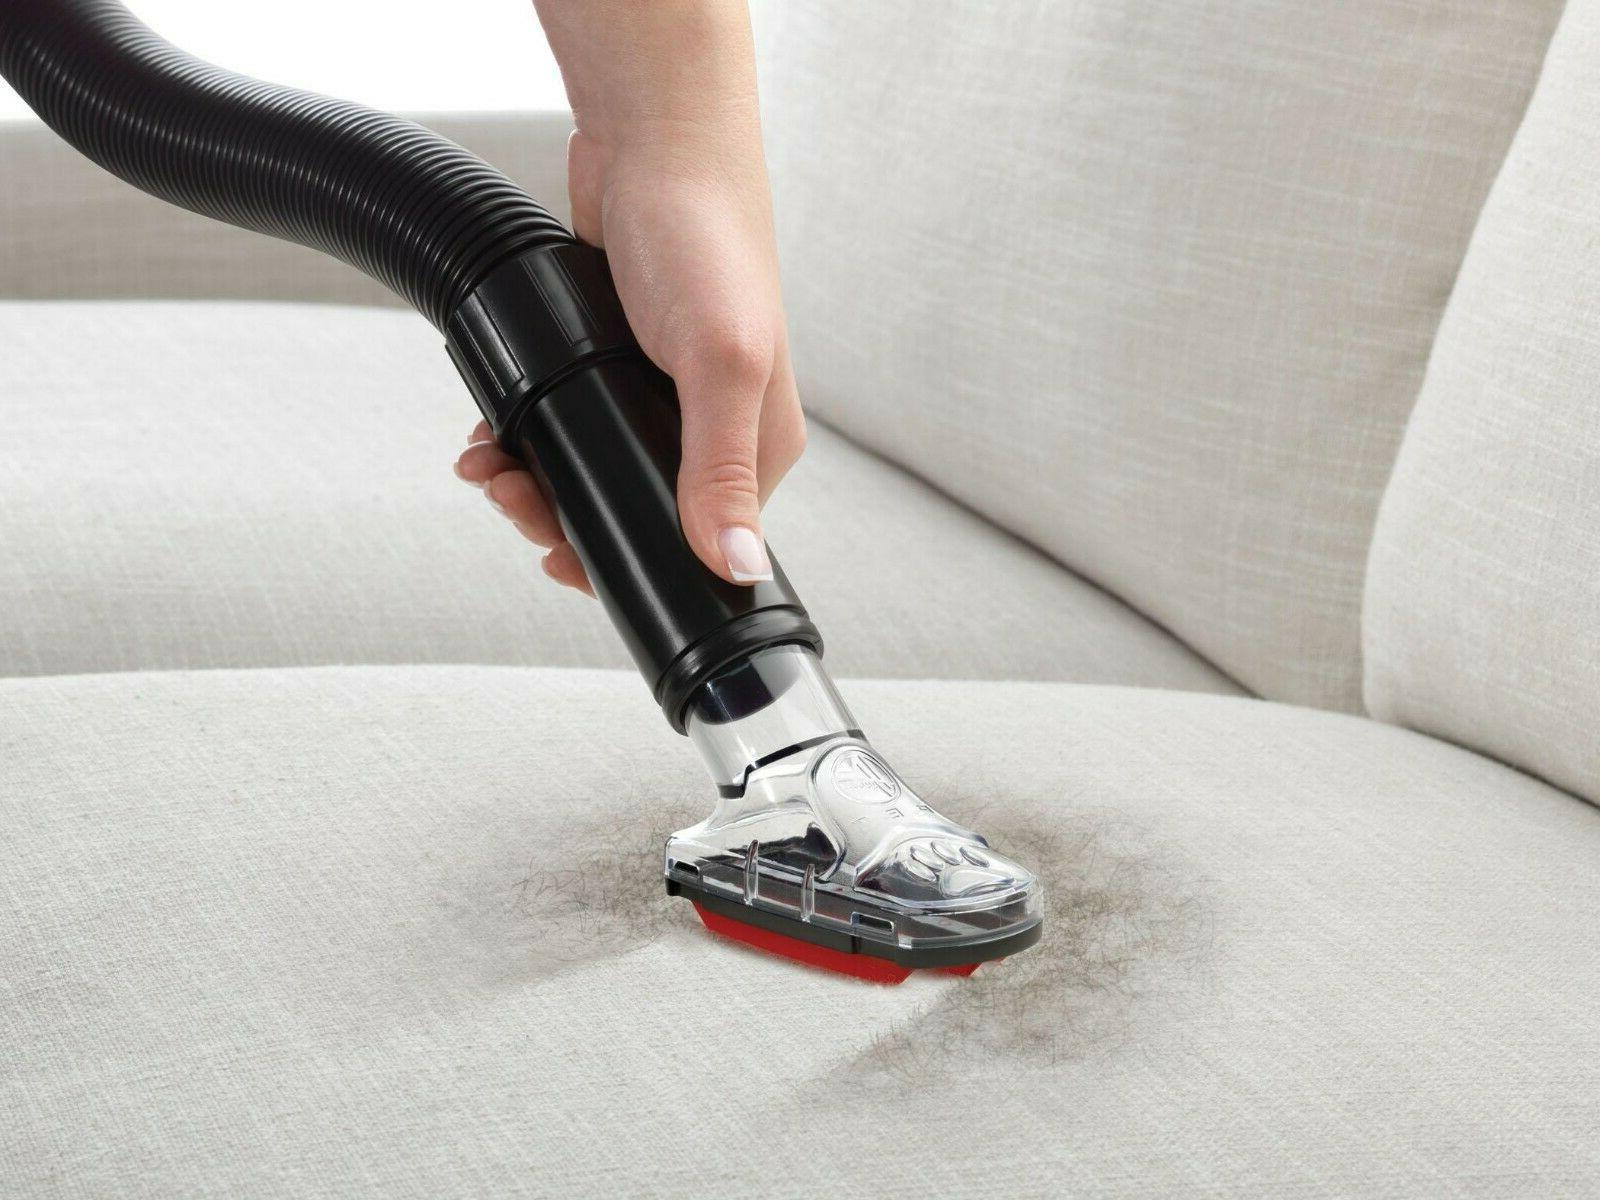 Hoover 2 Pet Rewind Bagless Upright Vacuum Cleaner